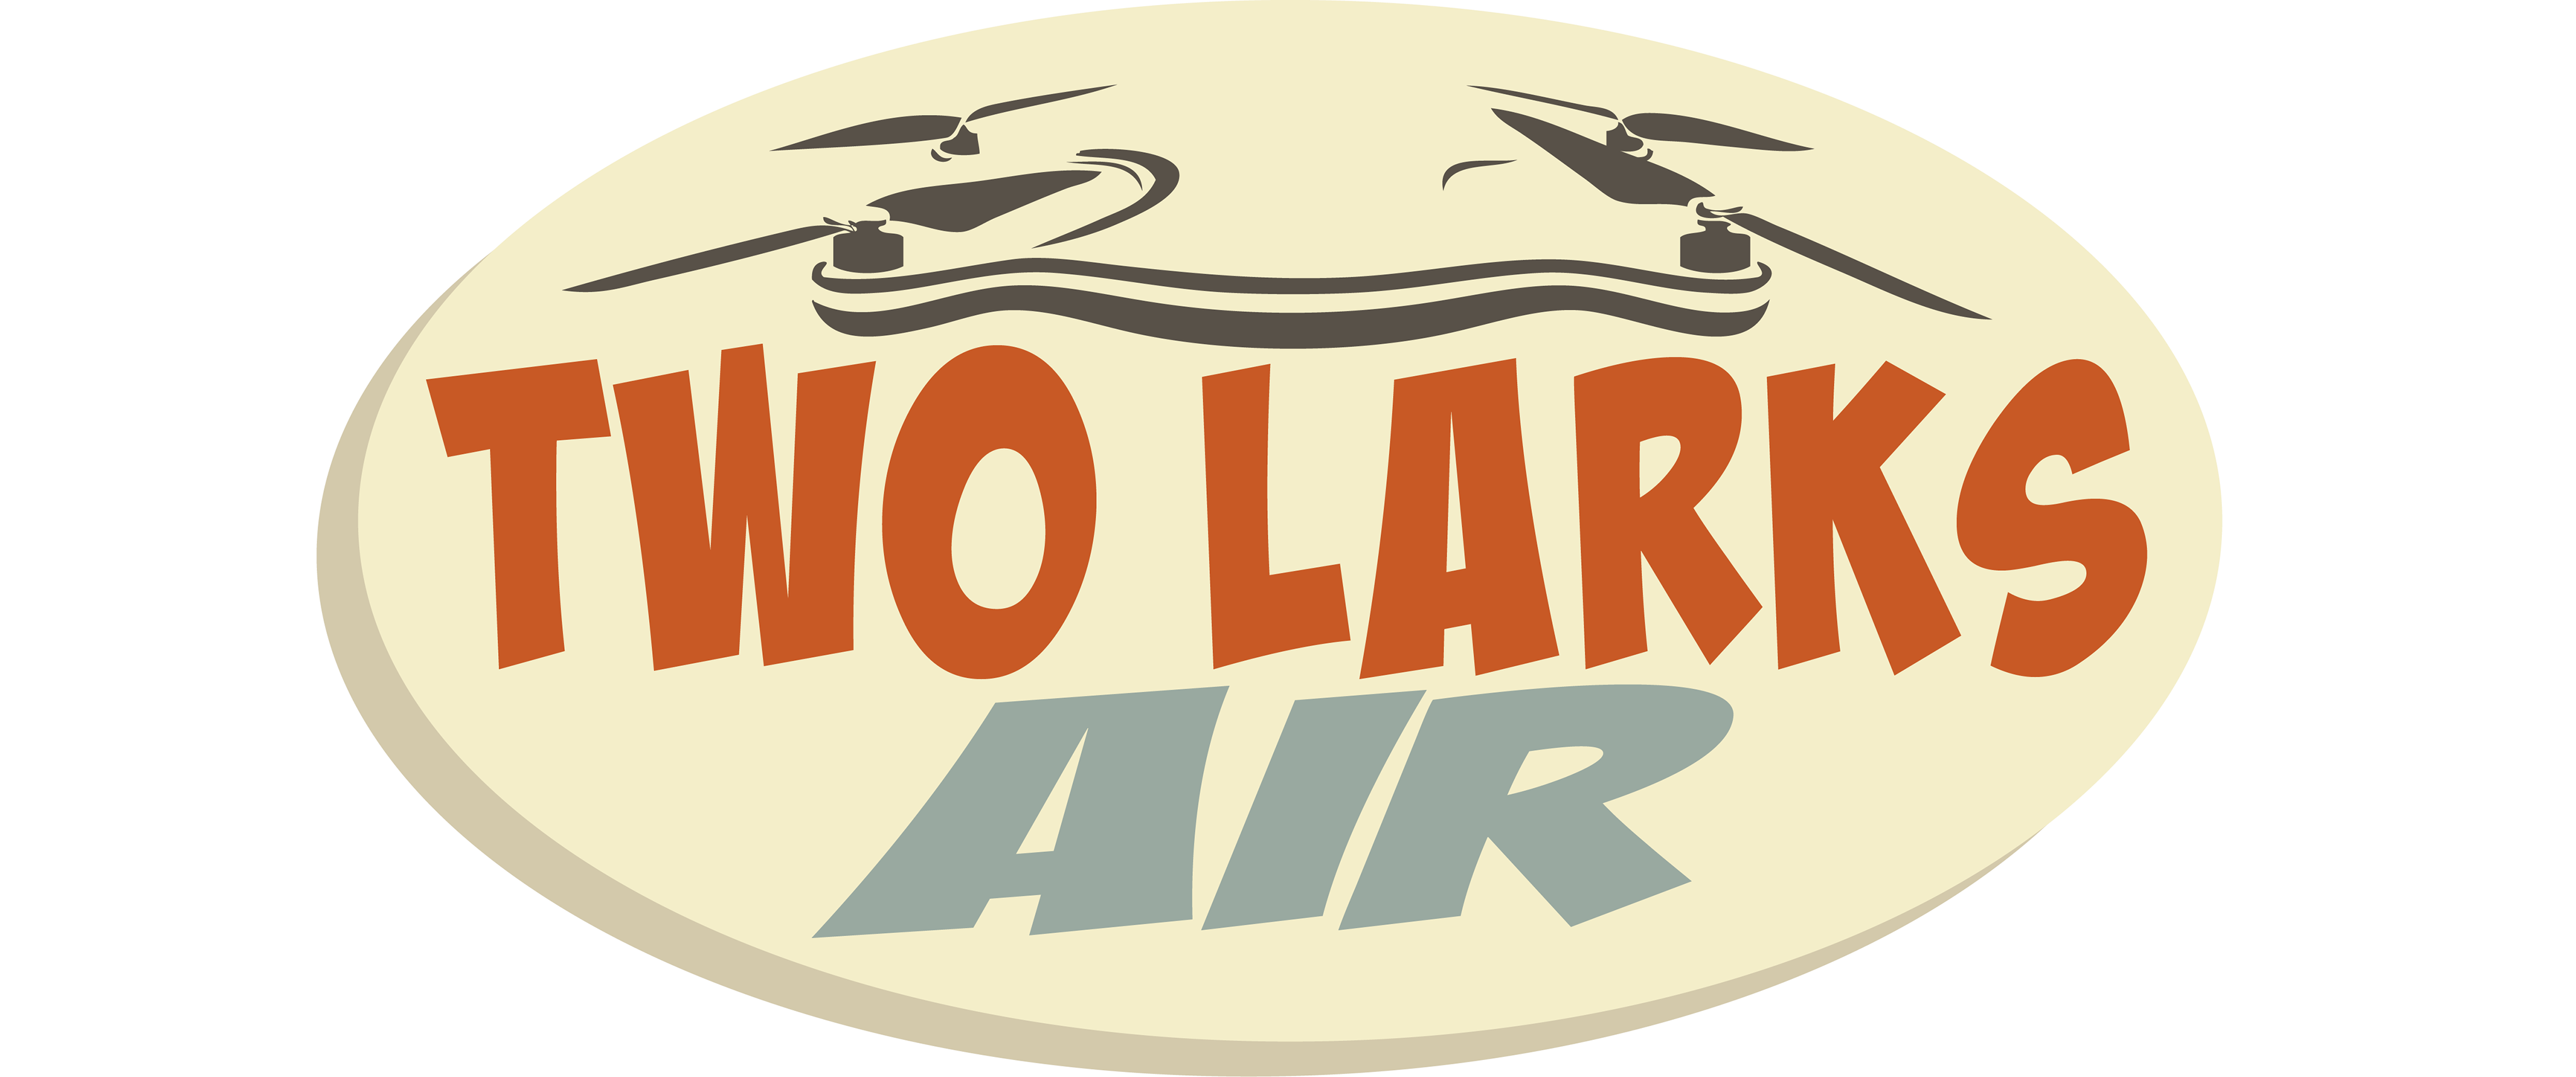 Two Larks Air